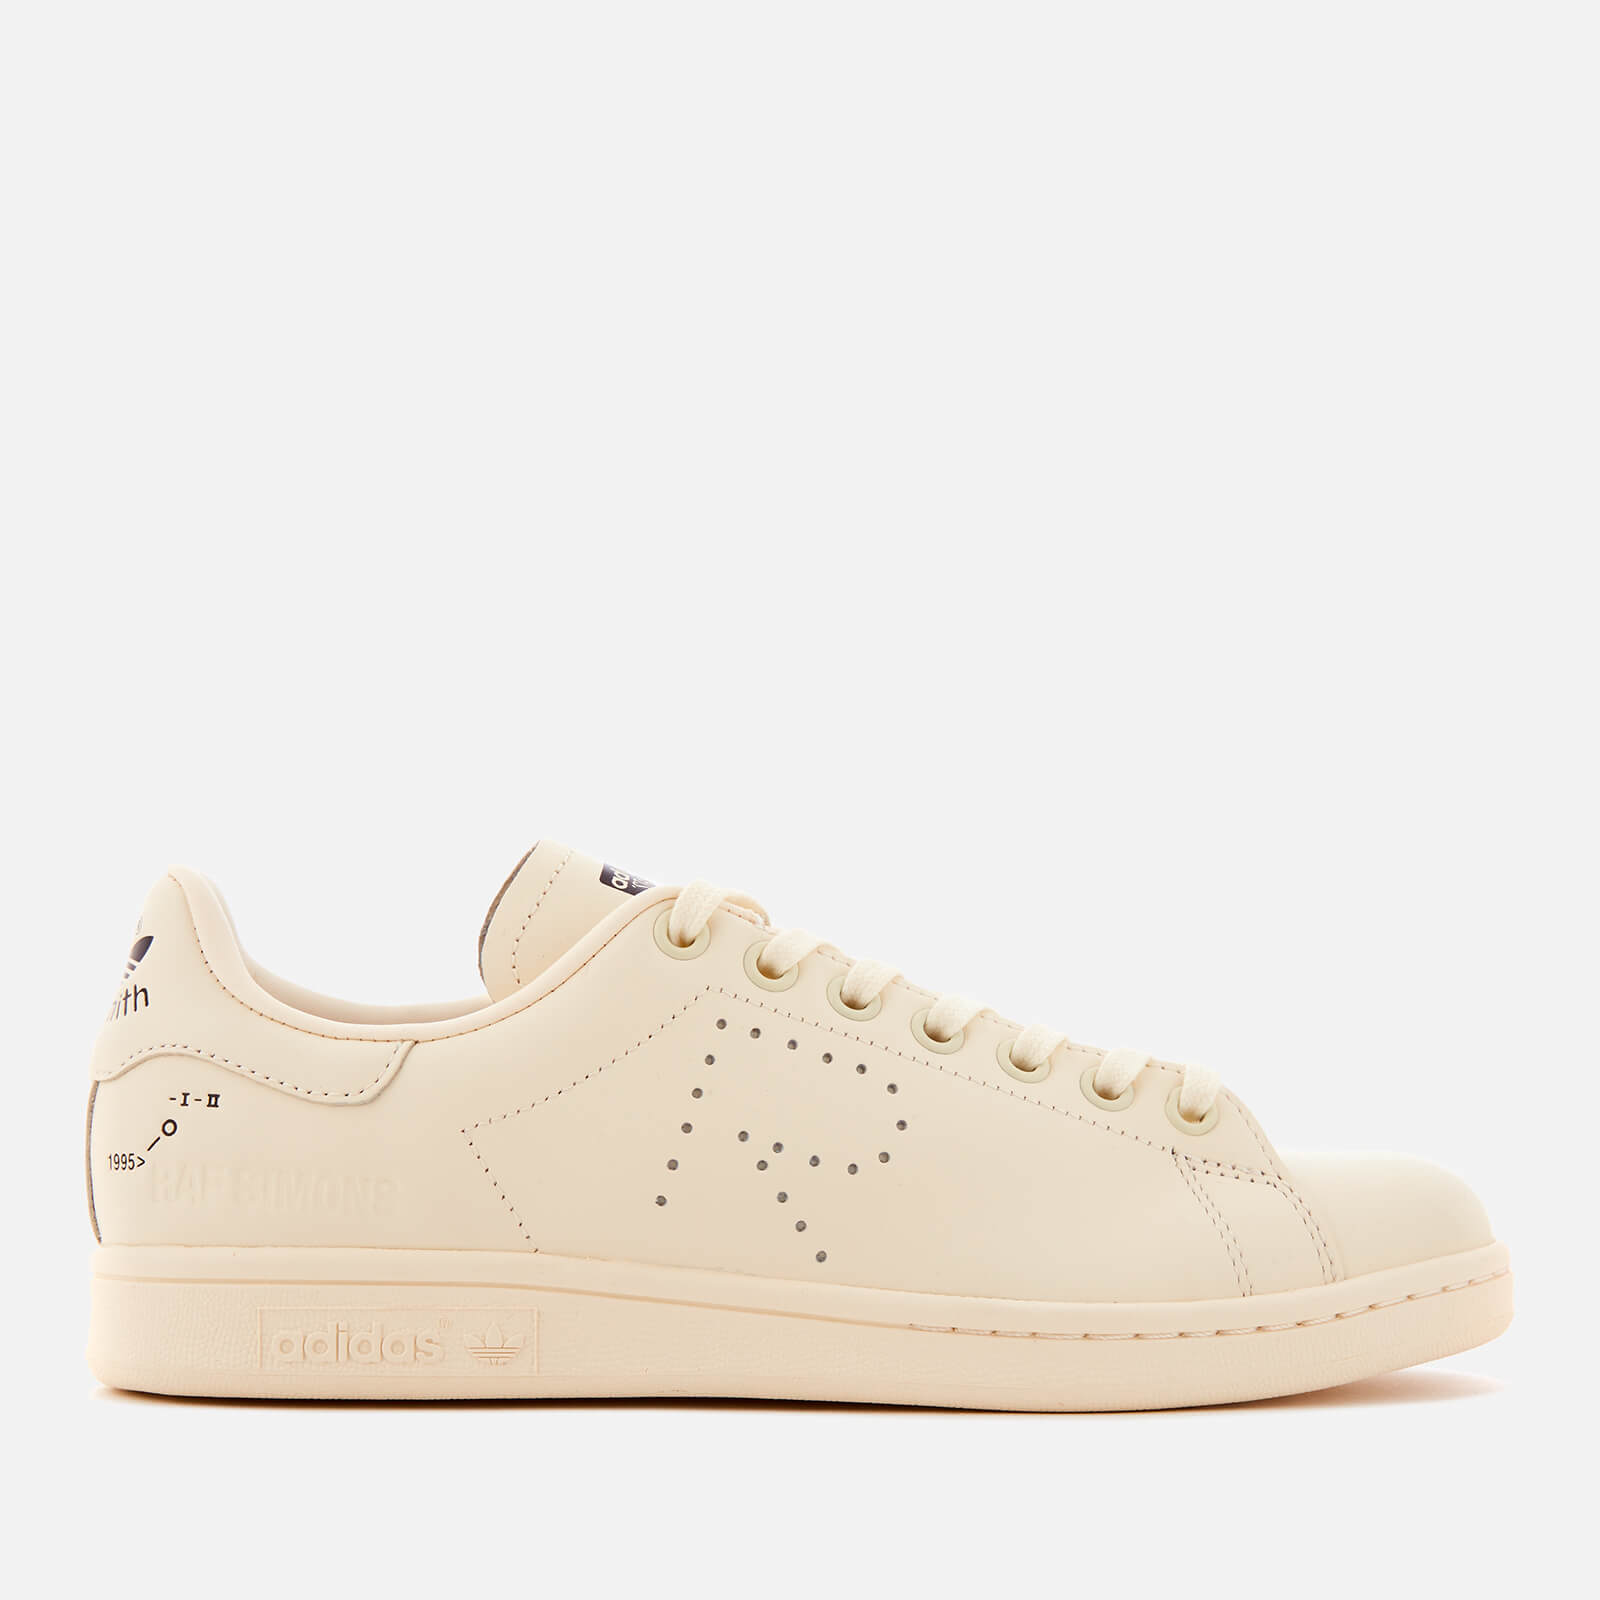 89cb4316de1982 adidas by Raf Simons Stan Smith Trainers - C White C Brown - Free UK  Delivery over £50